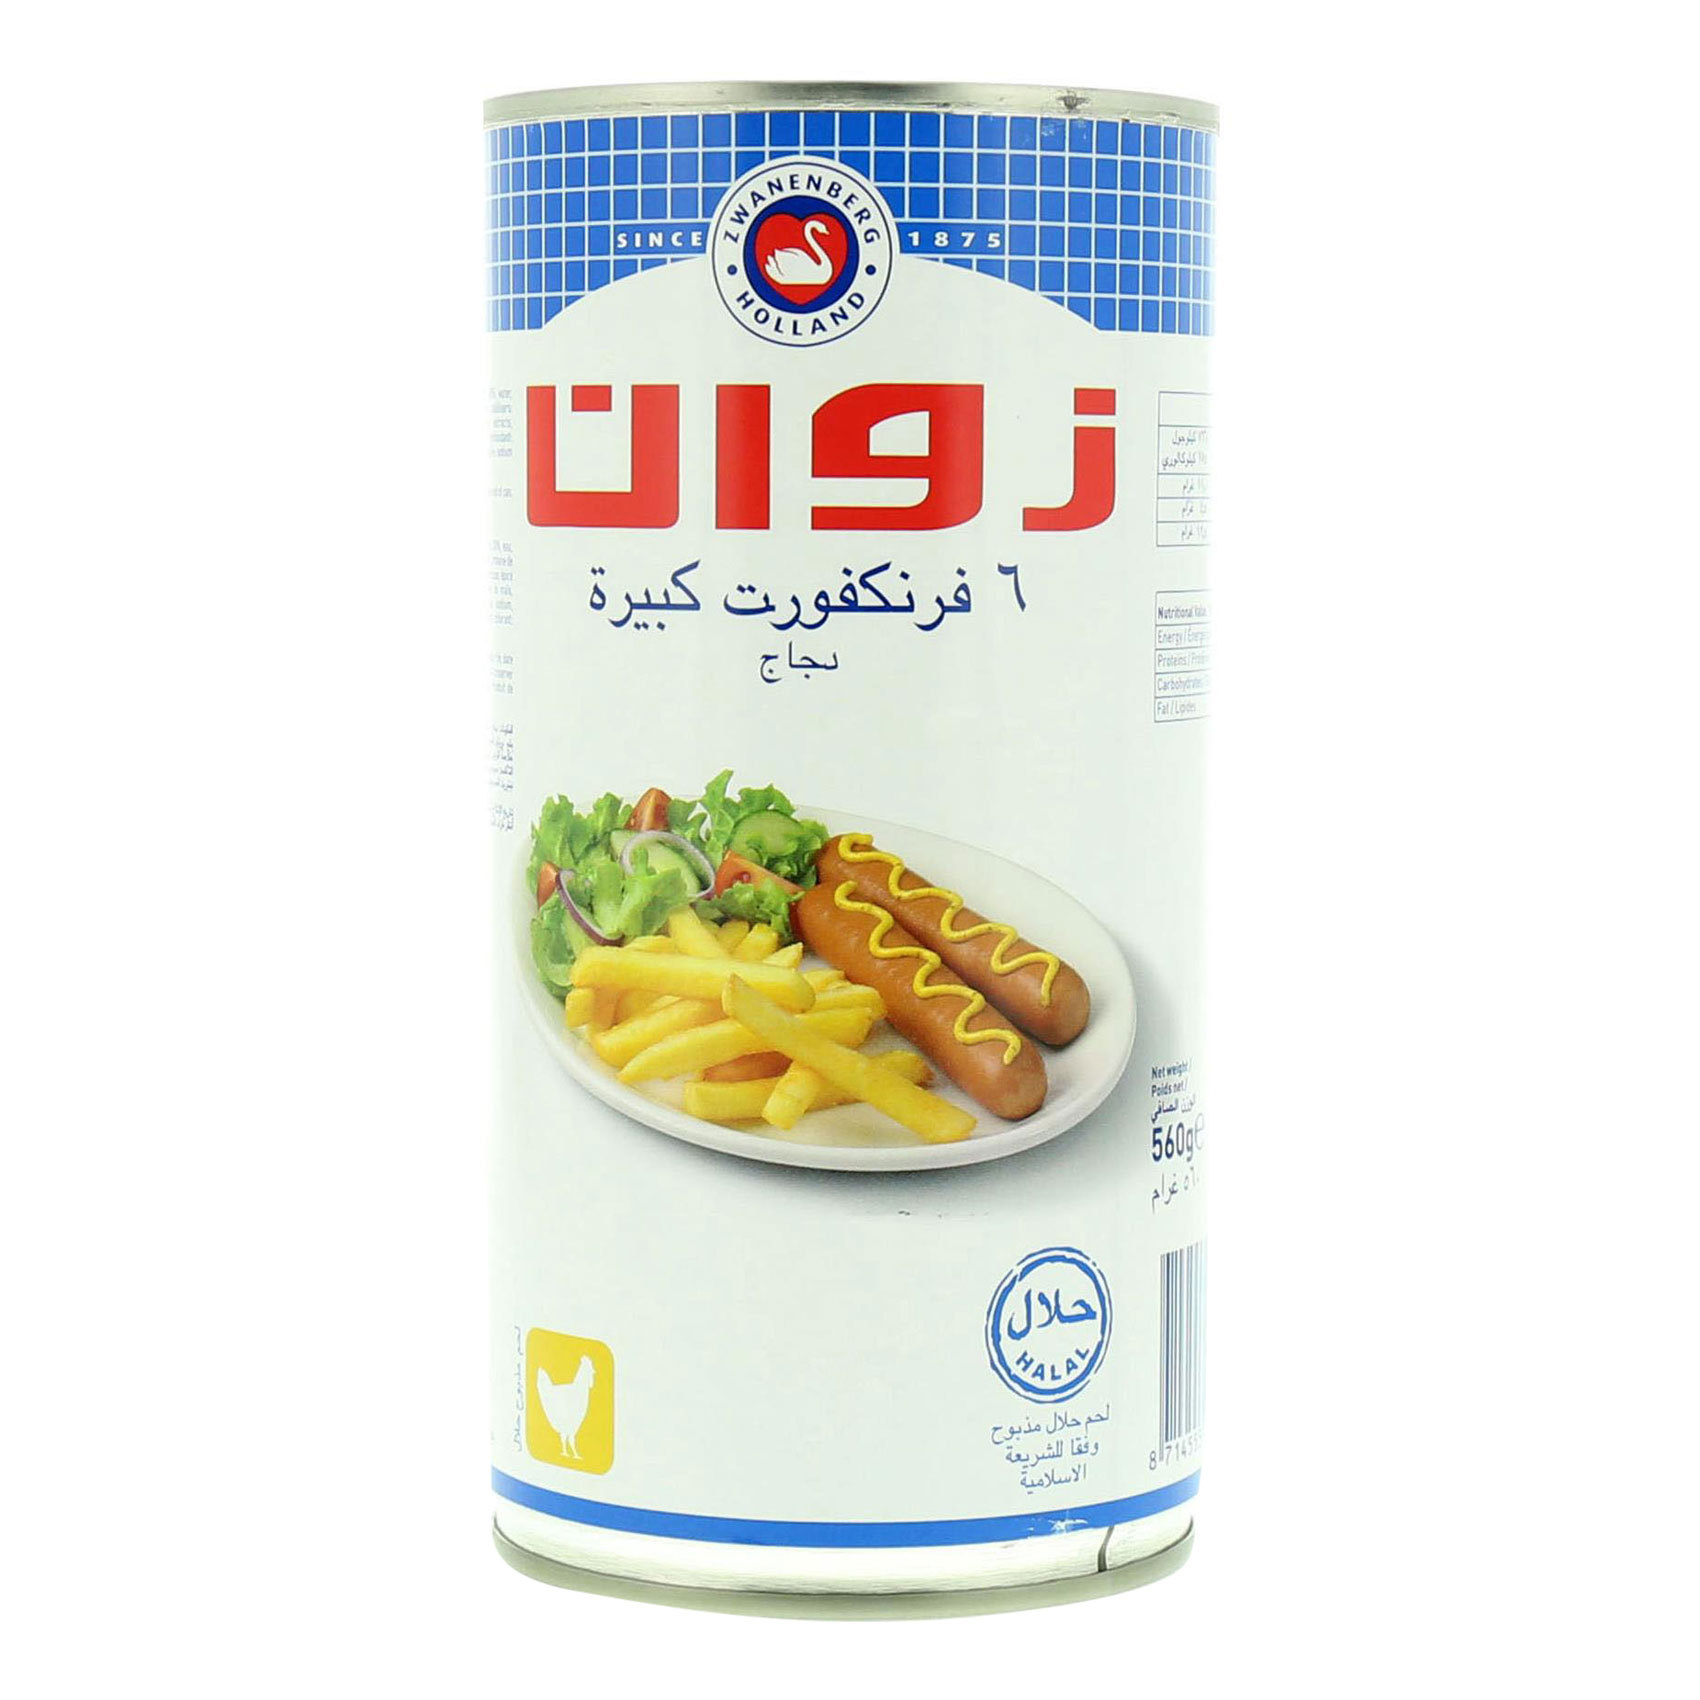 ZWAN BIG FRANKS (BEEF/CHKN) 560GR